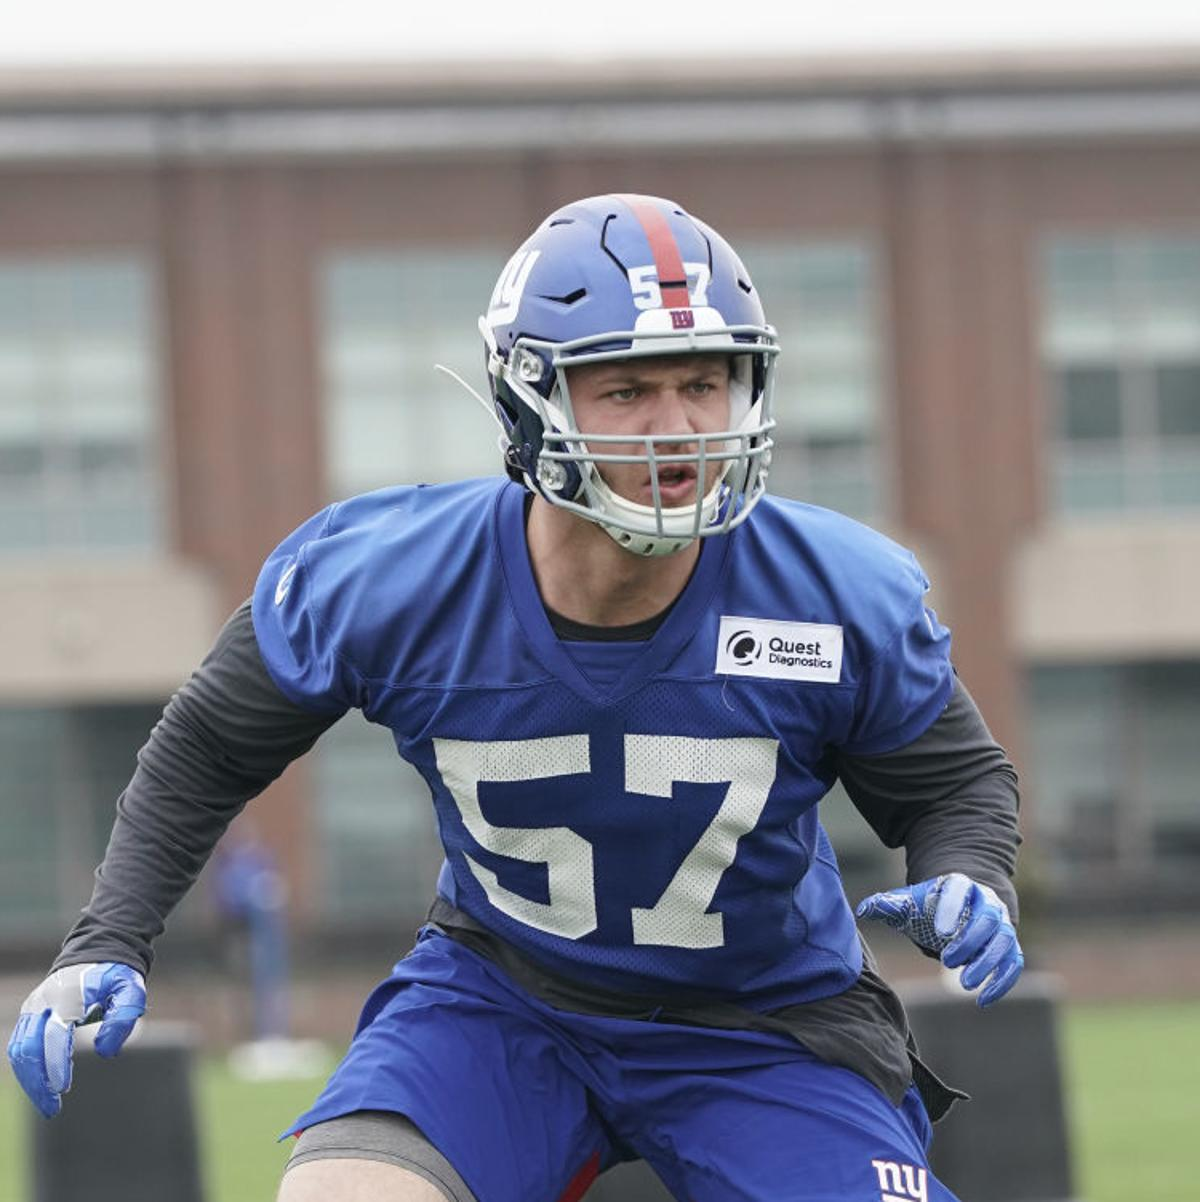 Former Badgers linebacker Ryan Connelly takes unlikely path